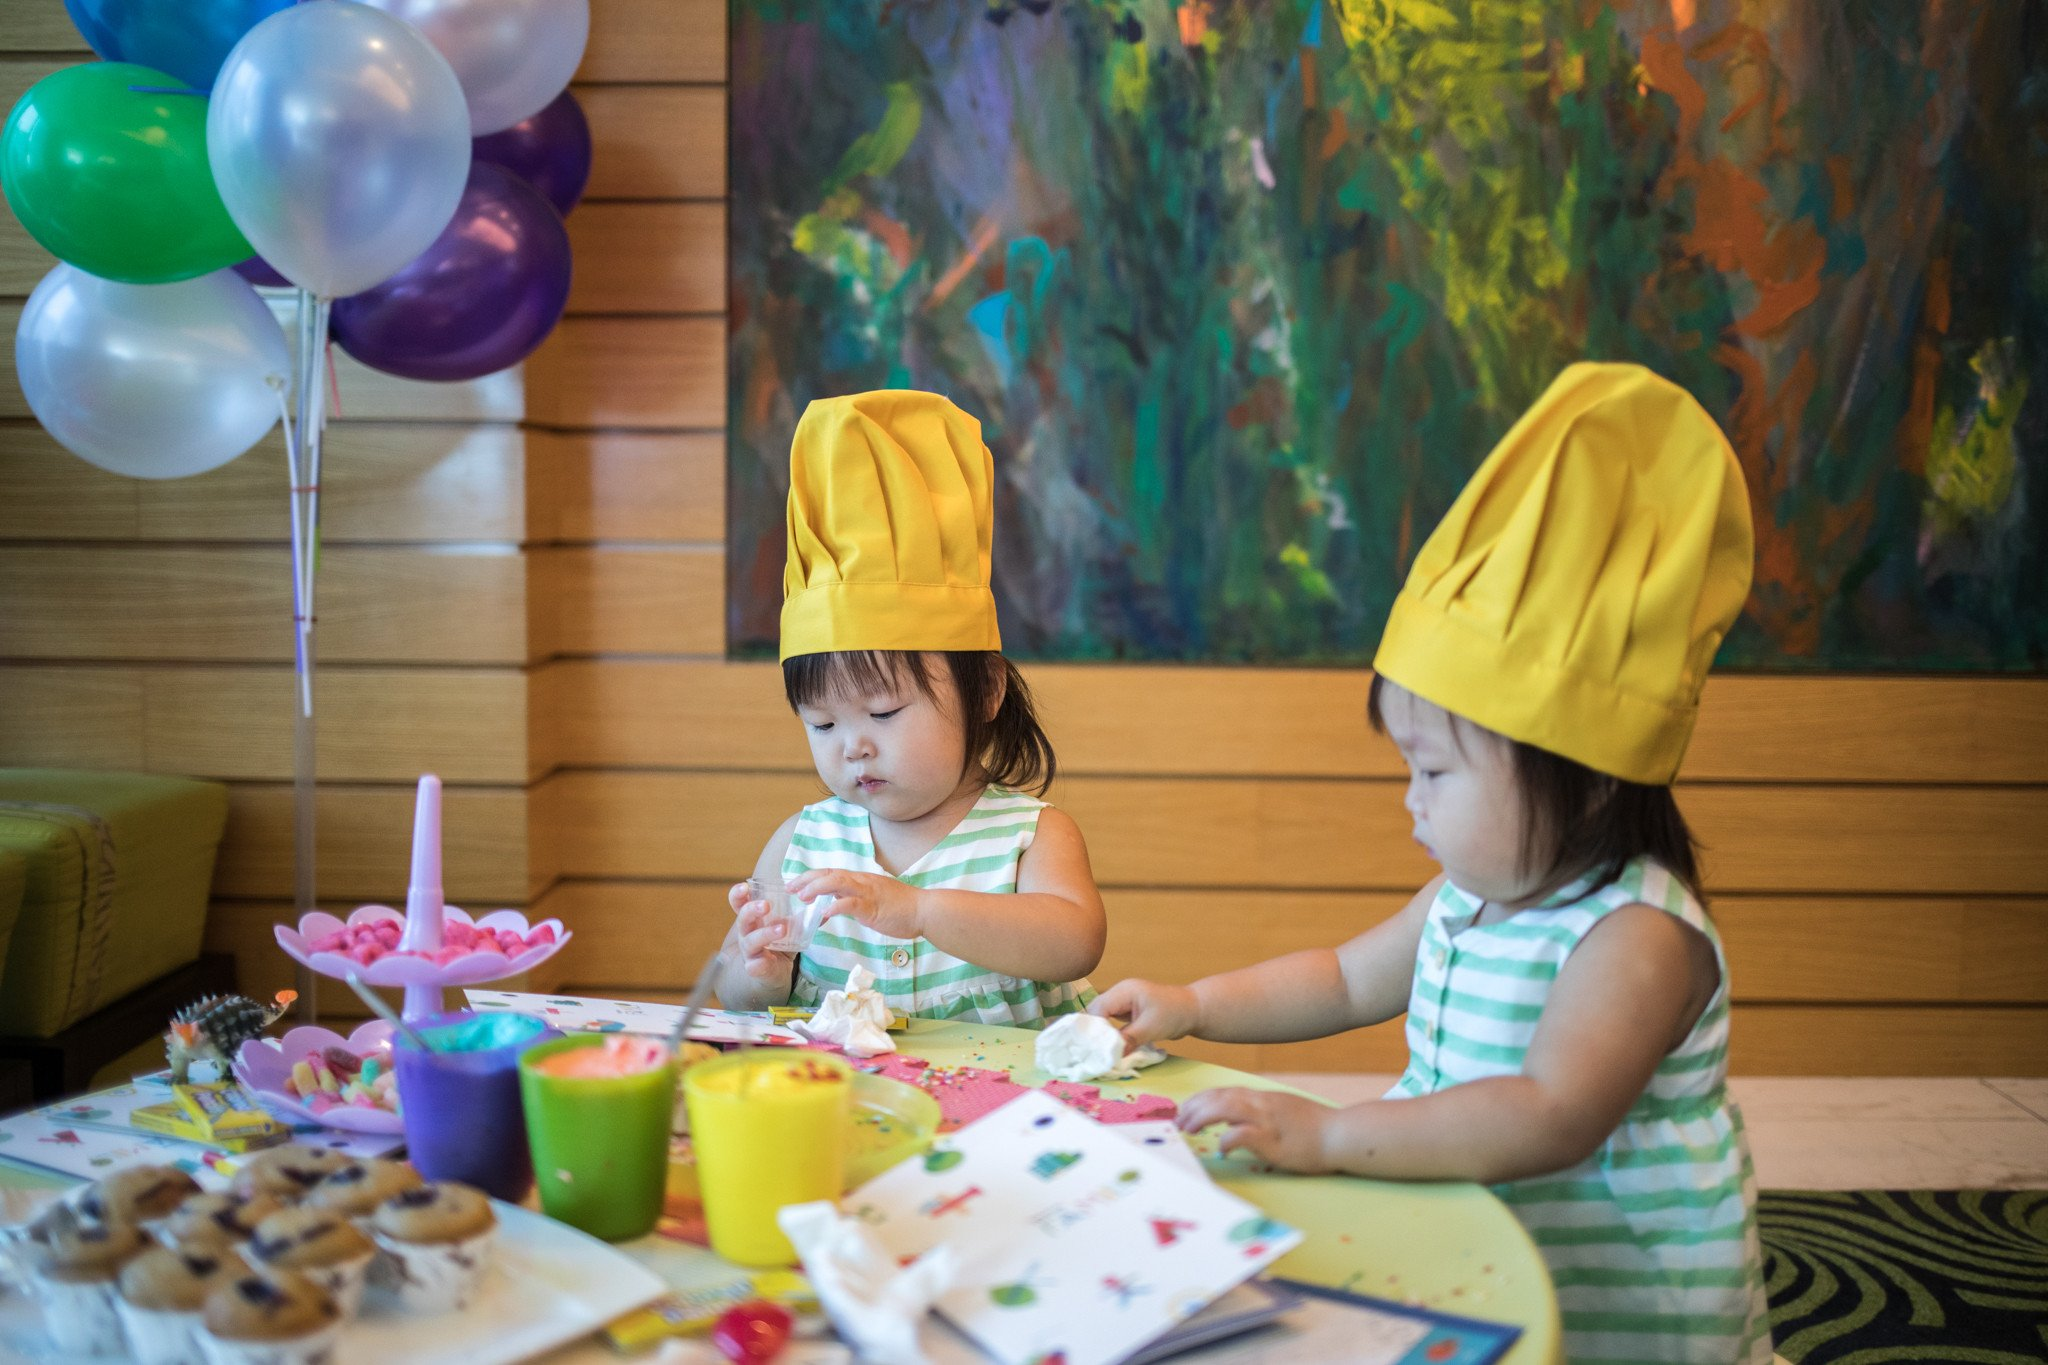 And brunch at The Seasonal Tastes with a delish international buffet spread! What's more, there is a dedicated children's corner with activities such as cupcake decorating, colouring and a customised buffet spread for the kids. Perfect for parents who want to steal some time-off to enjoy brunch while the kids are at play.